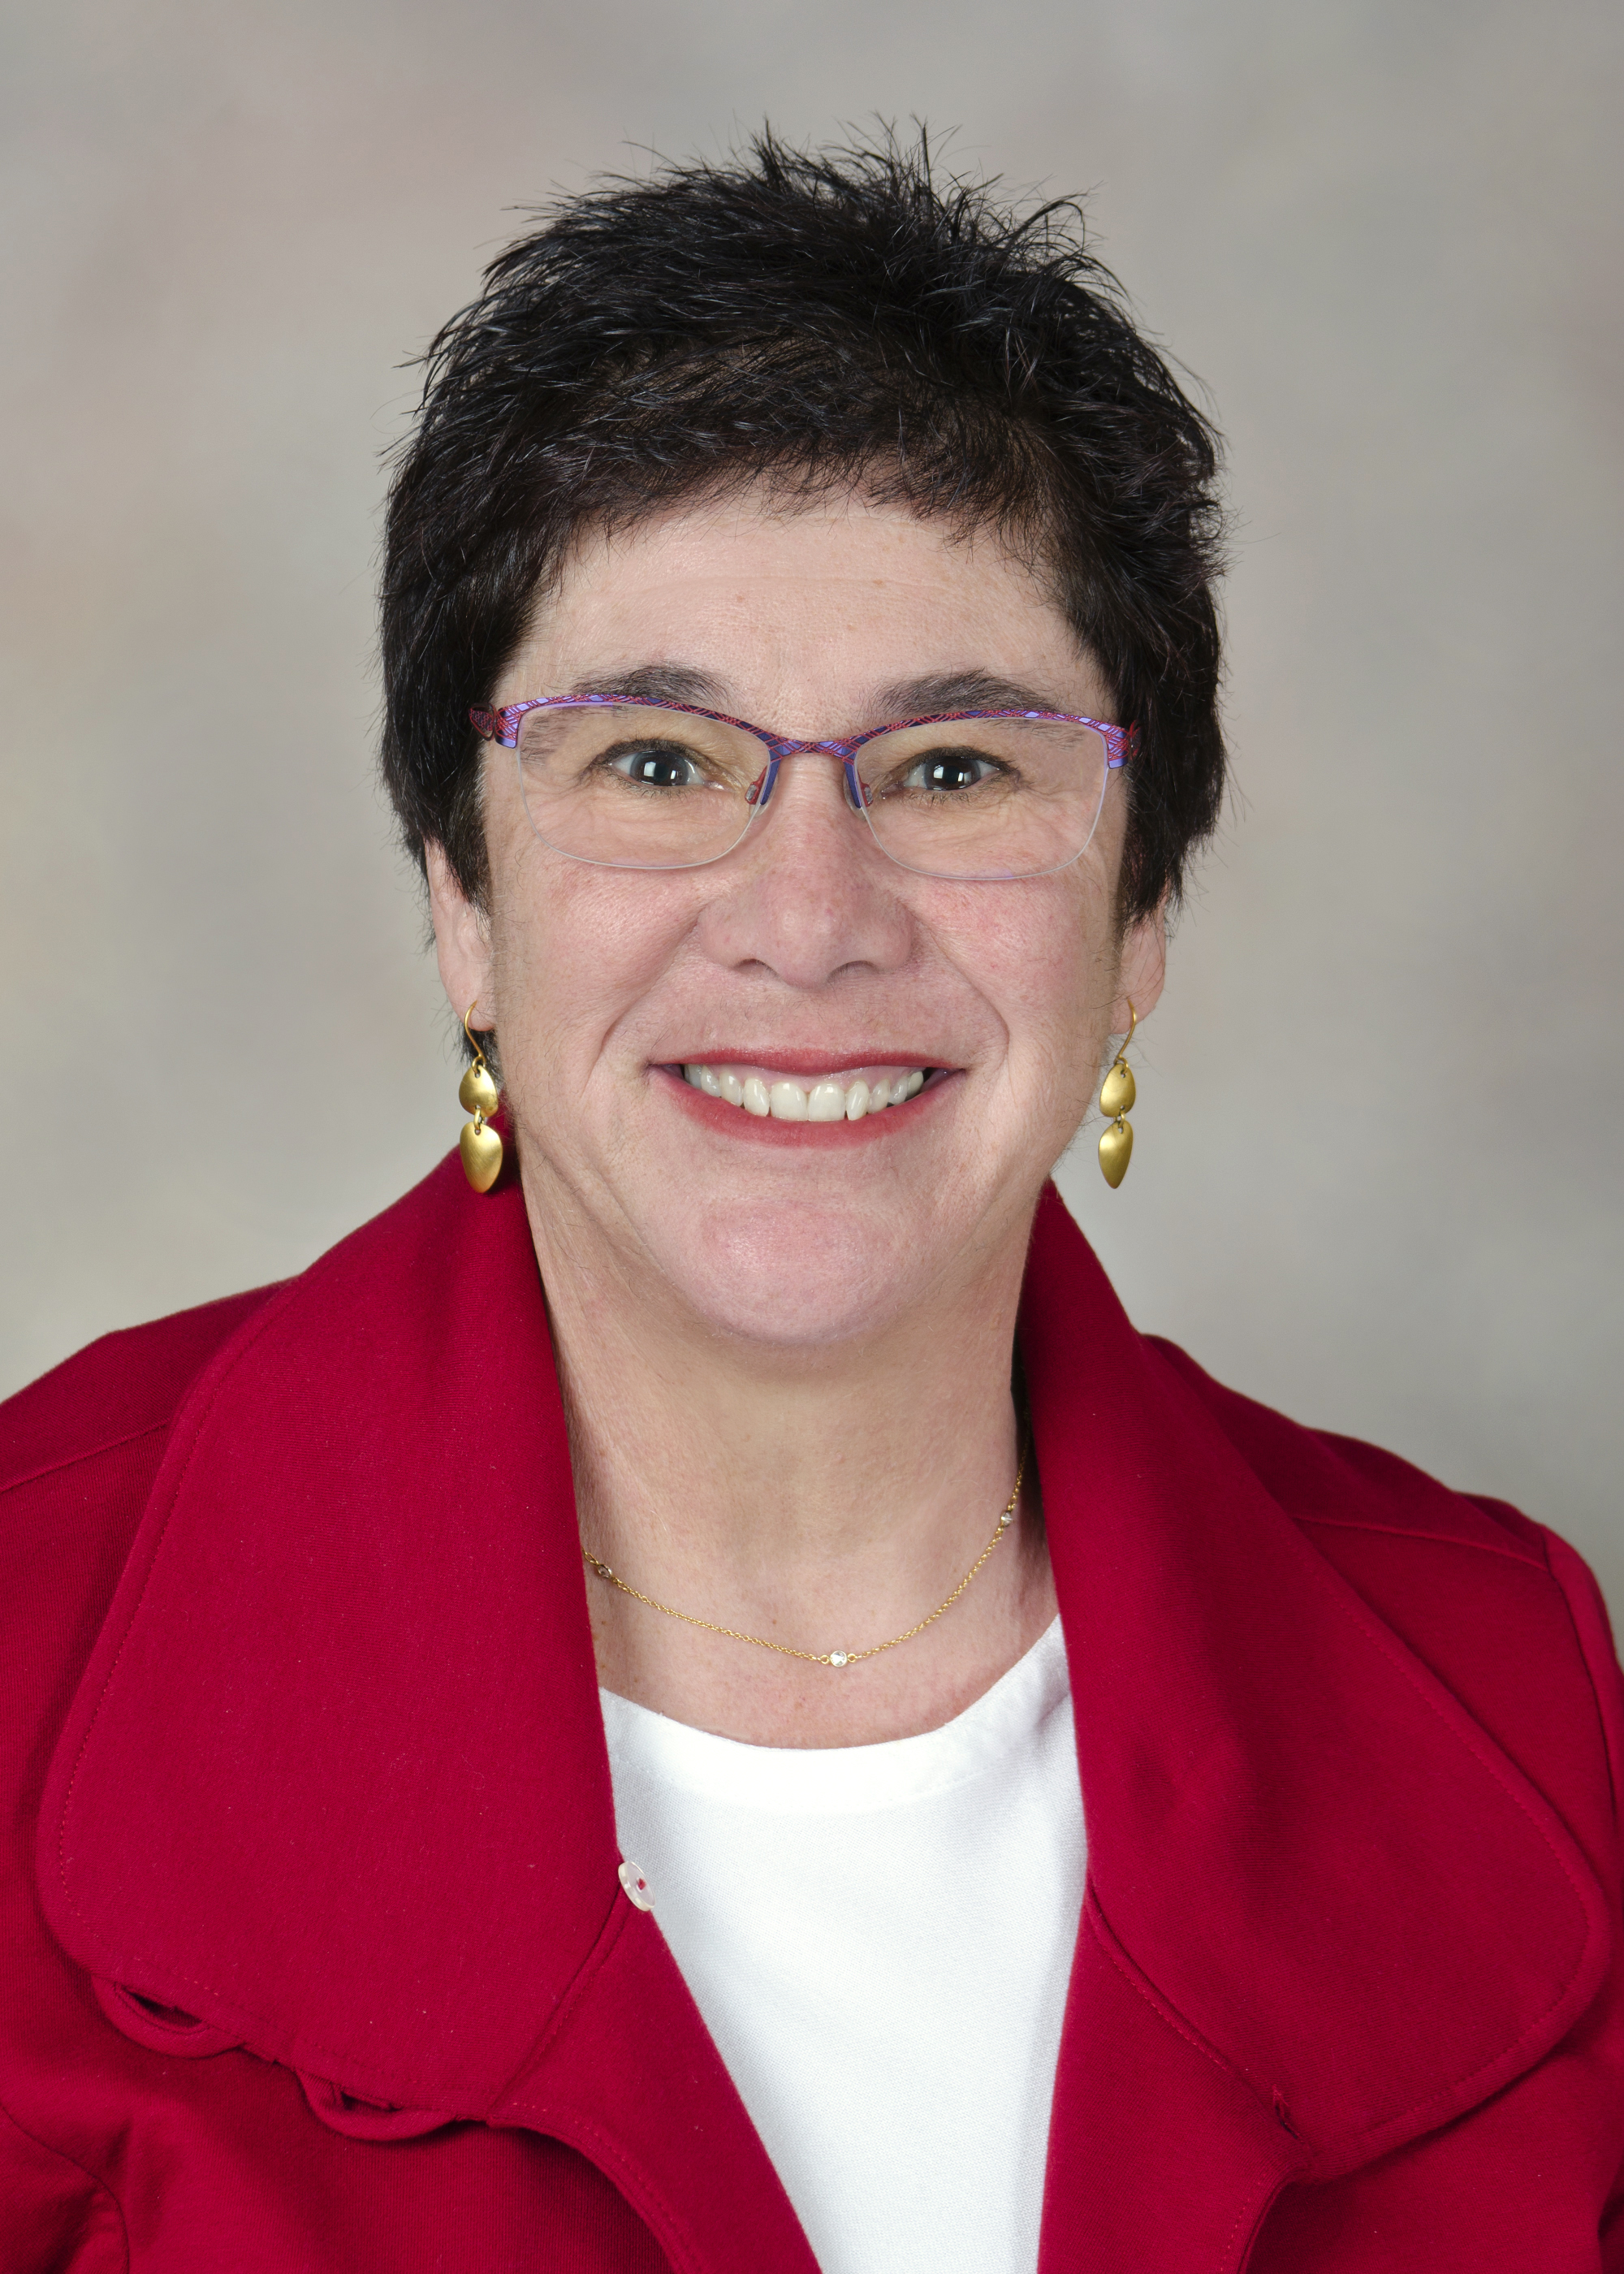 This is an image of Dr. Melanie Fried-Oken, a smiling woman in her 60's with short dark hair and a red jacket.